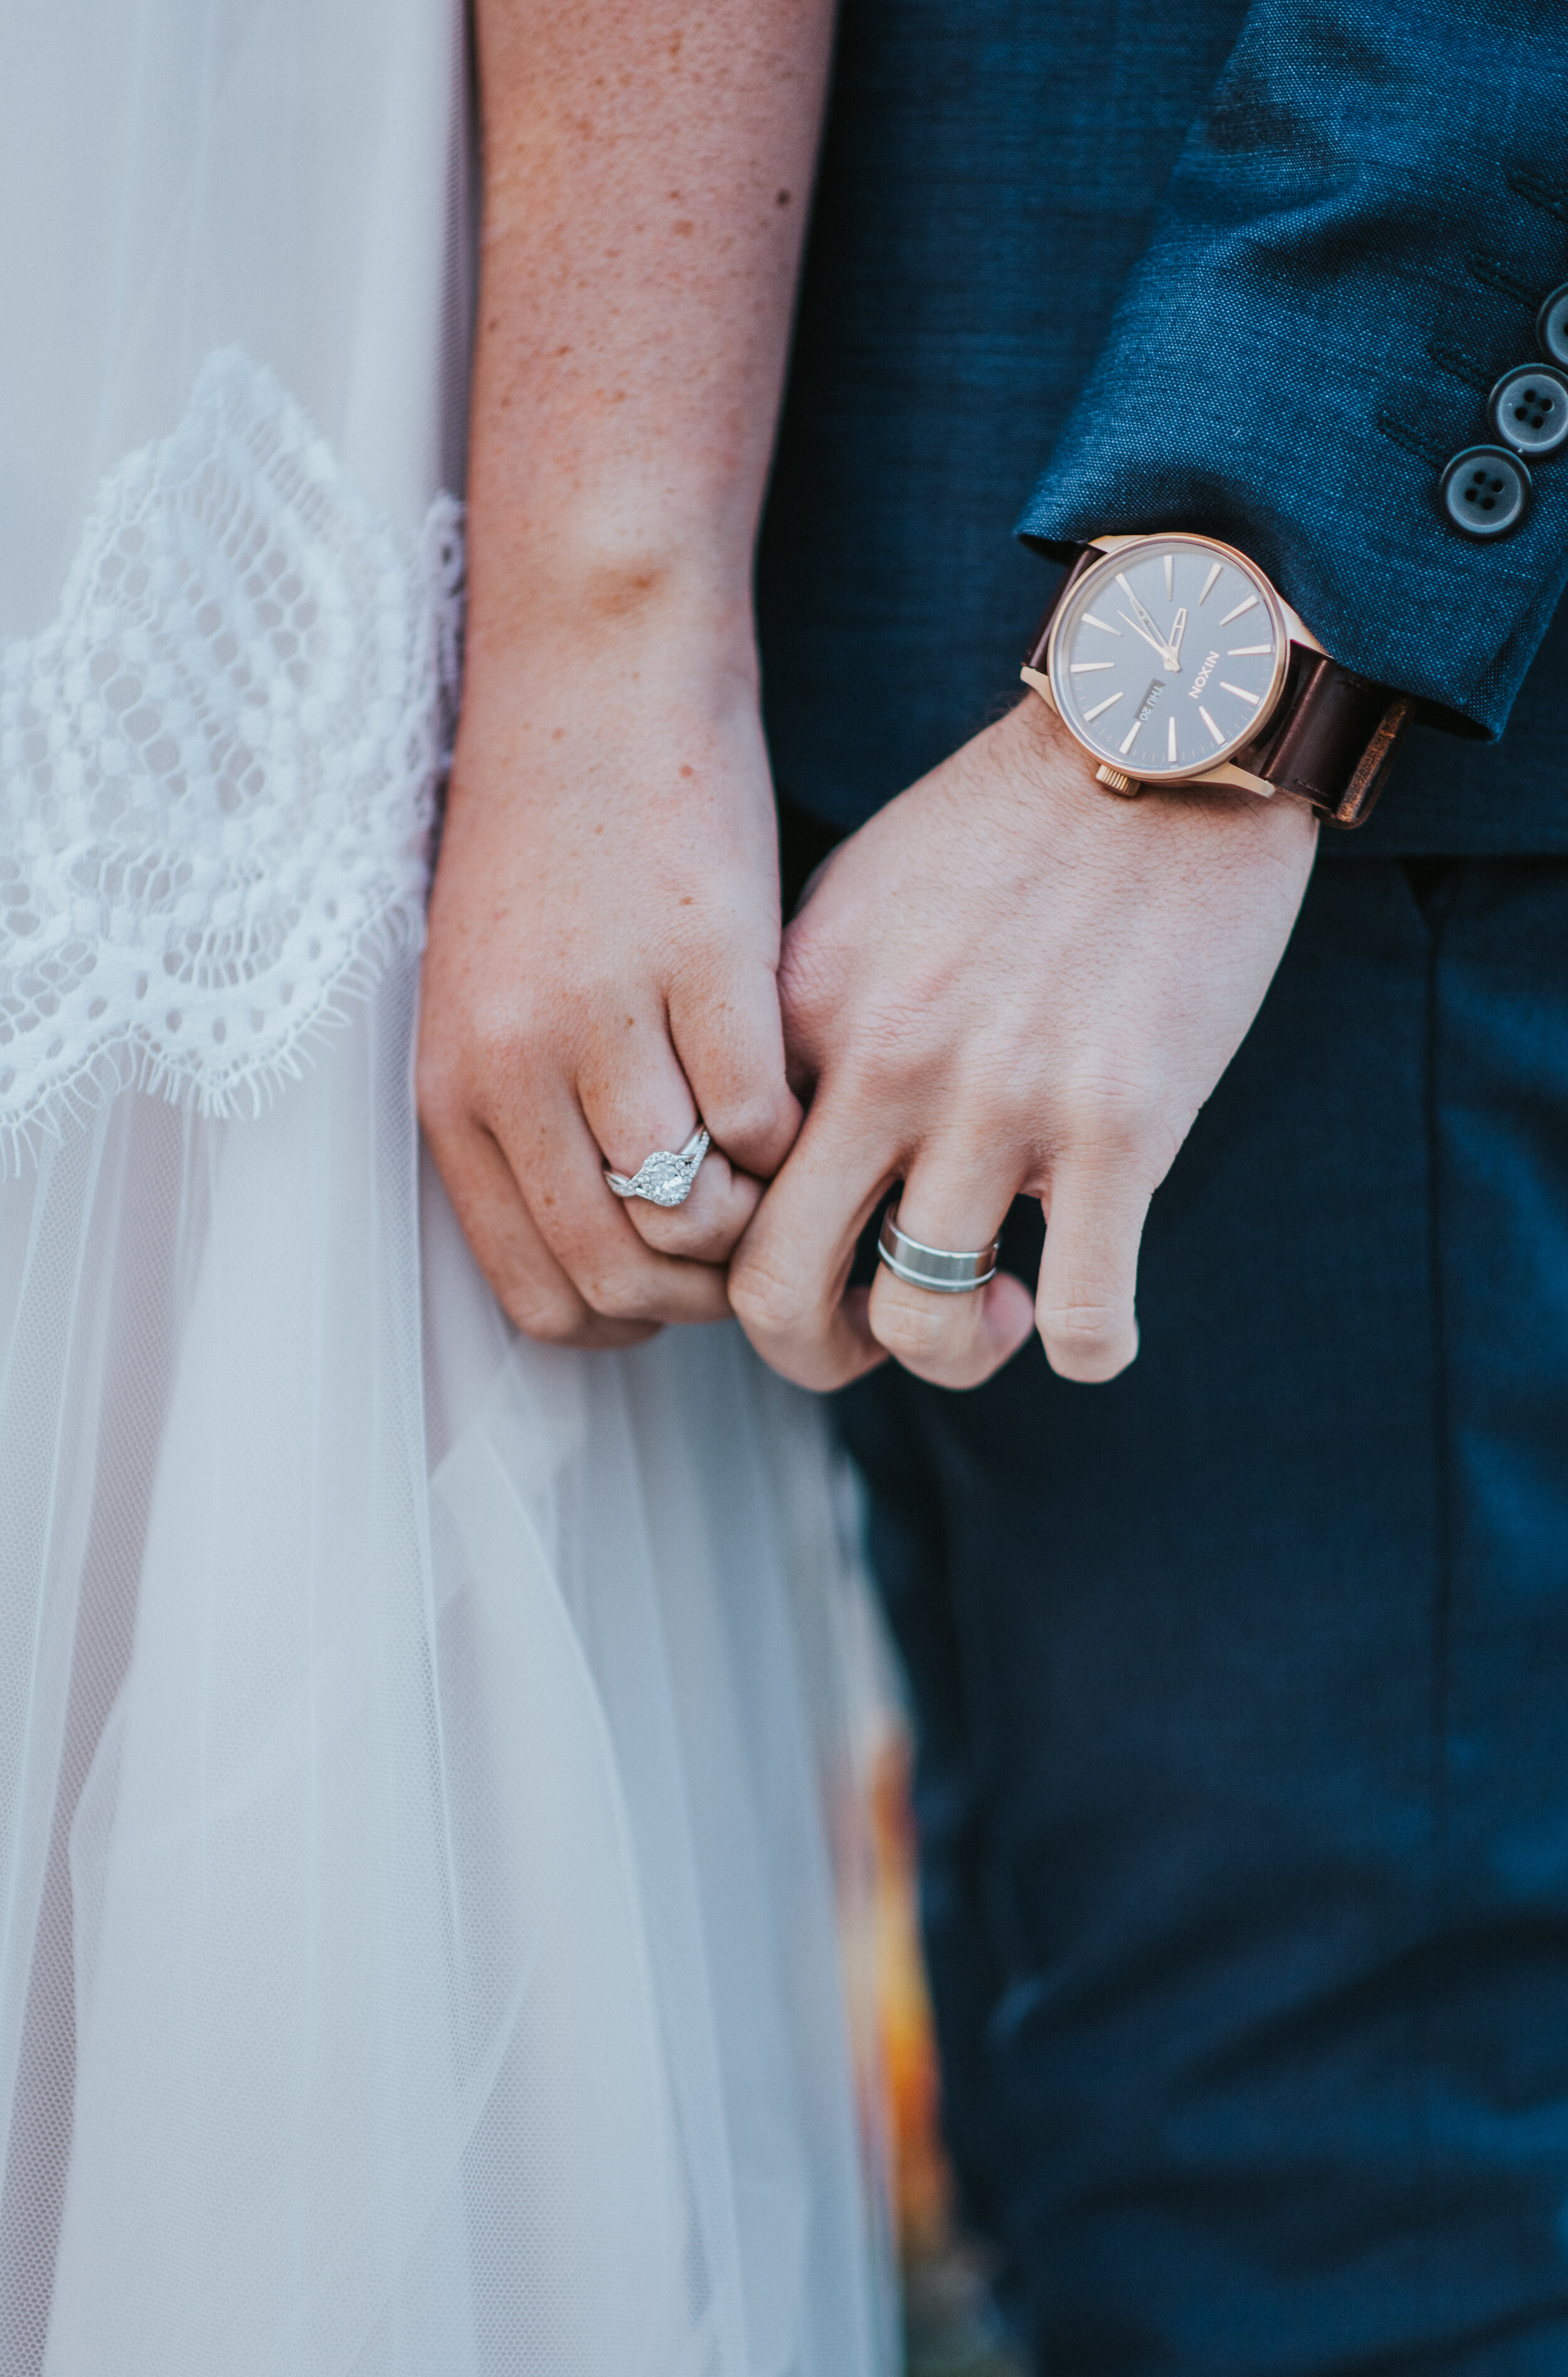 holding_hands_with_wedding_rings.JPG